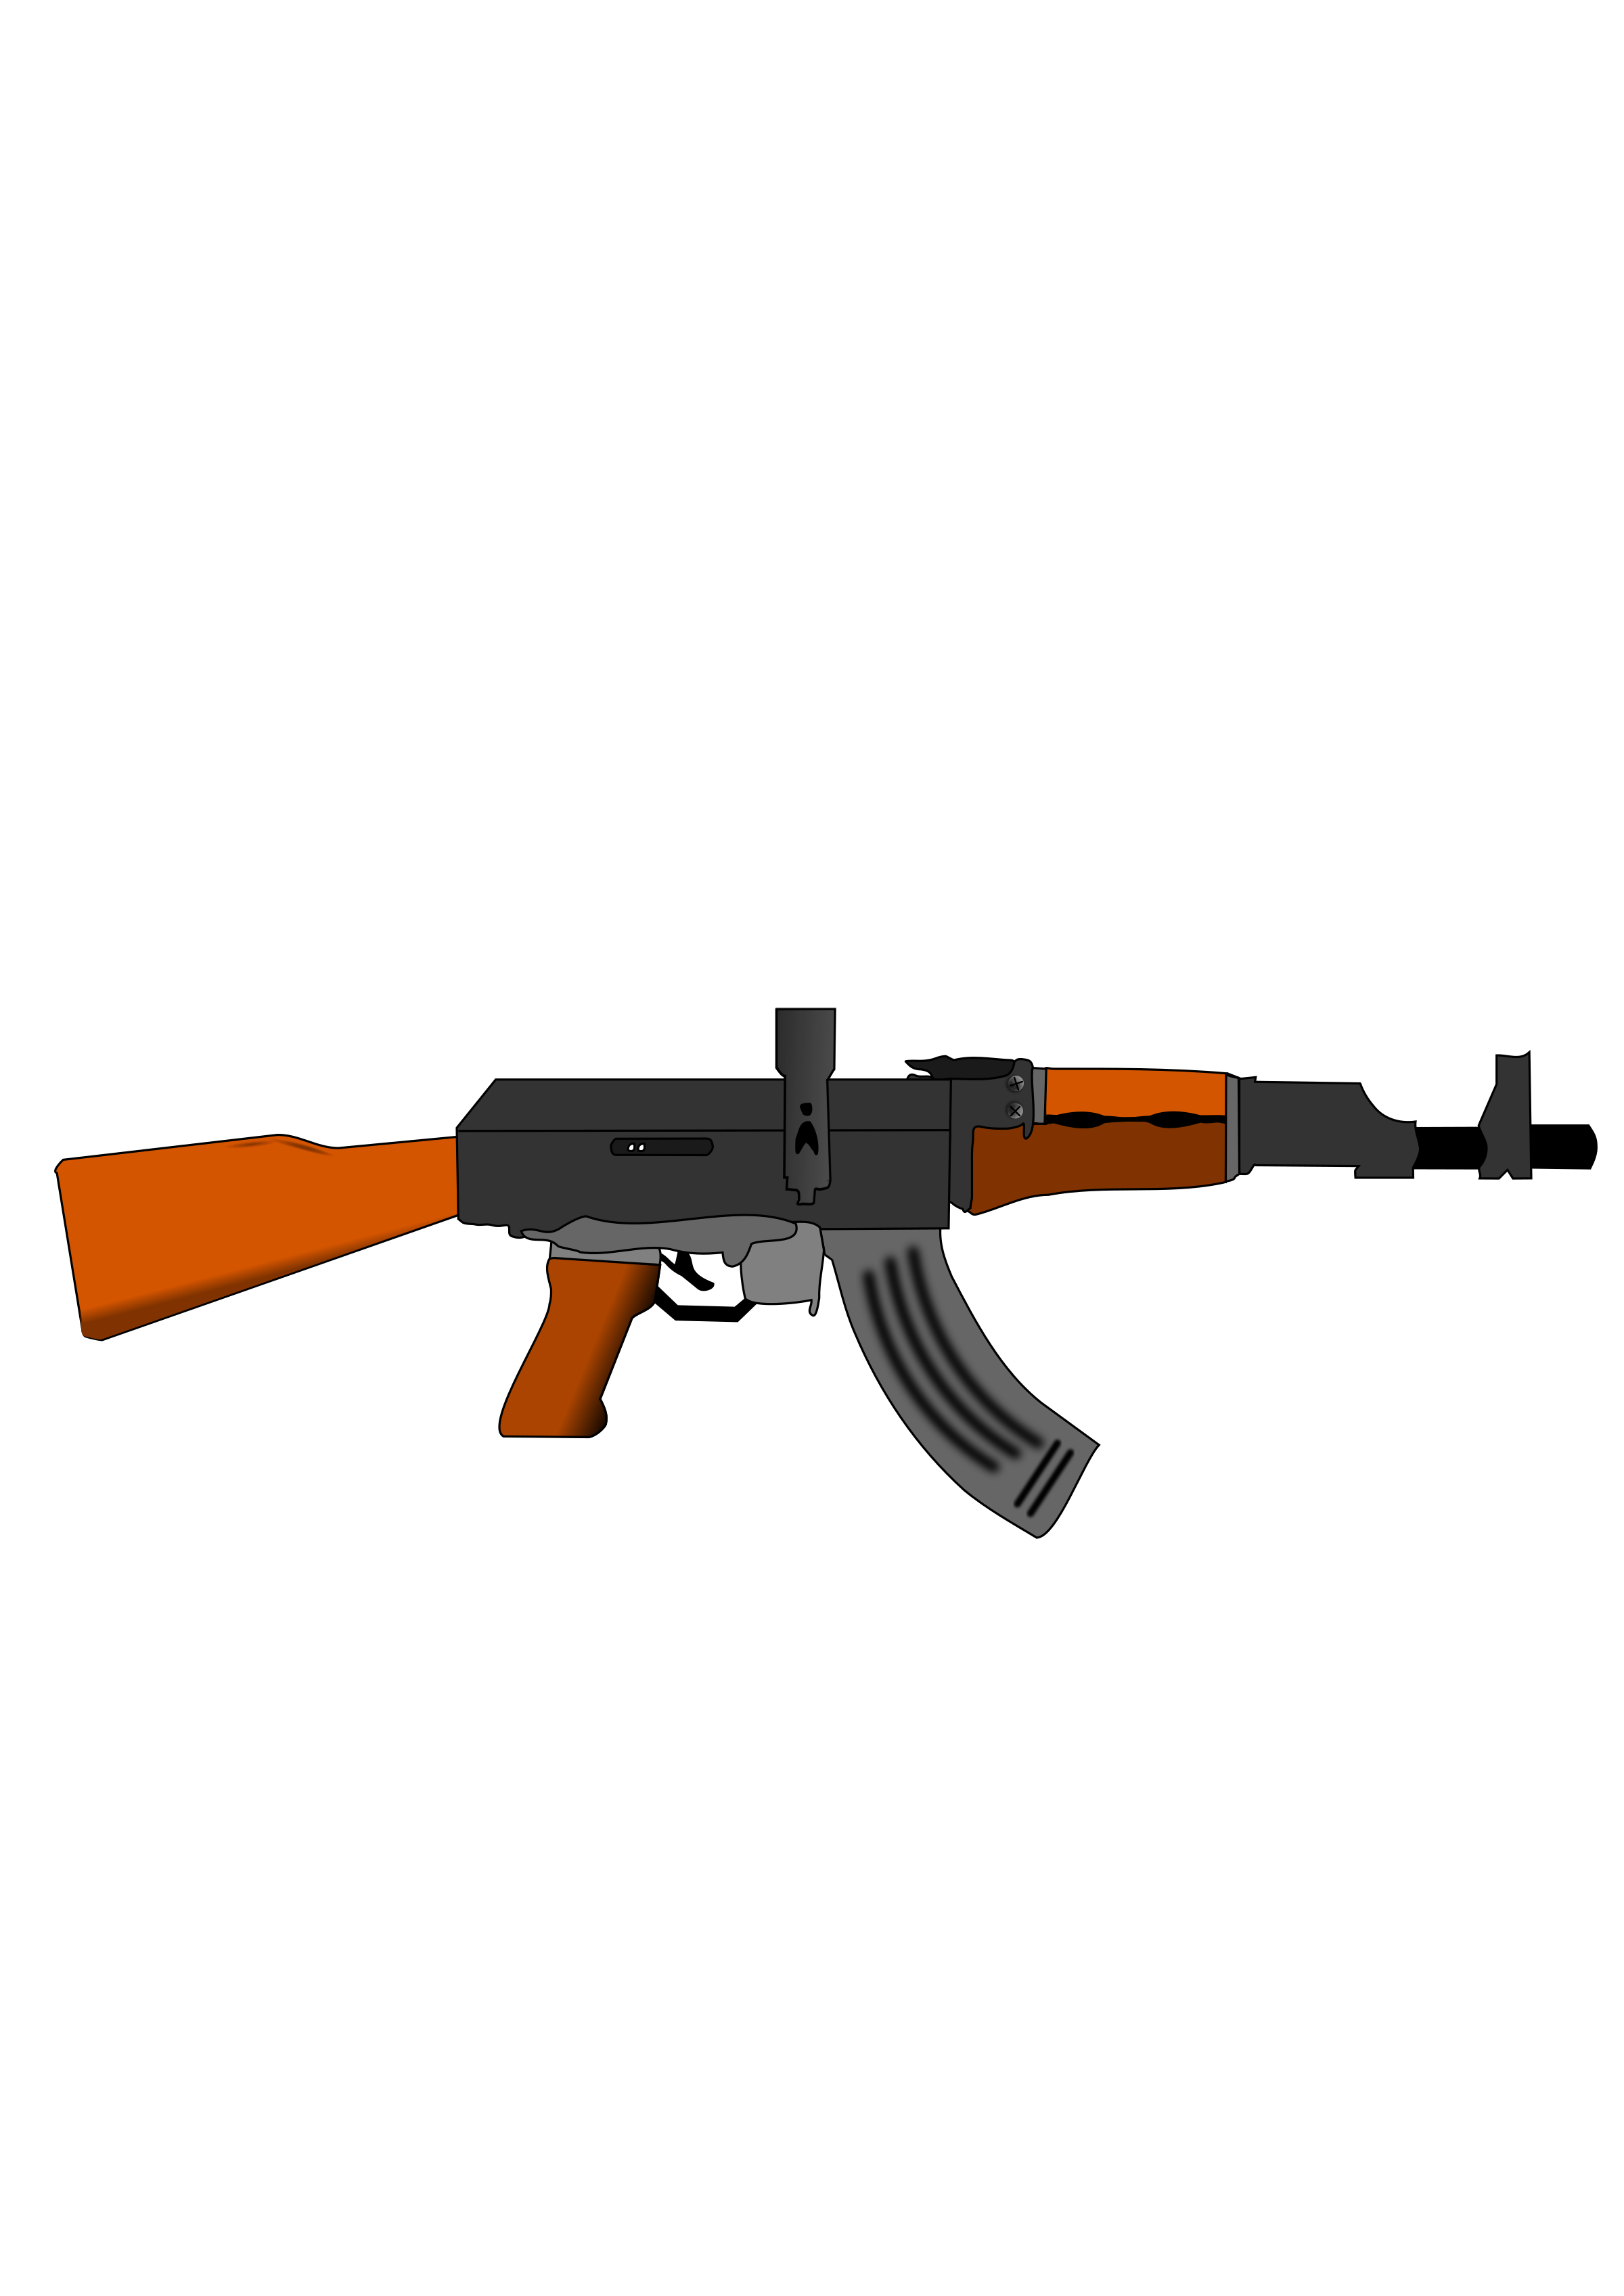 ak 47 gun vector clipart image free stock photo public domain rh goodfreephotos com  ak 47 bullet clipart